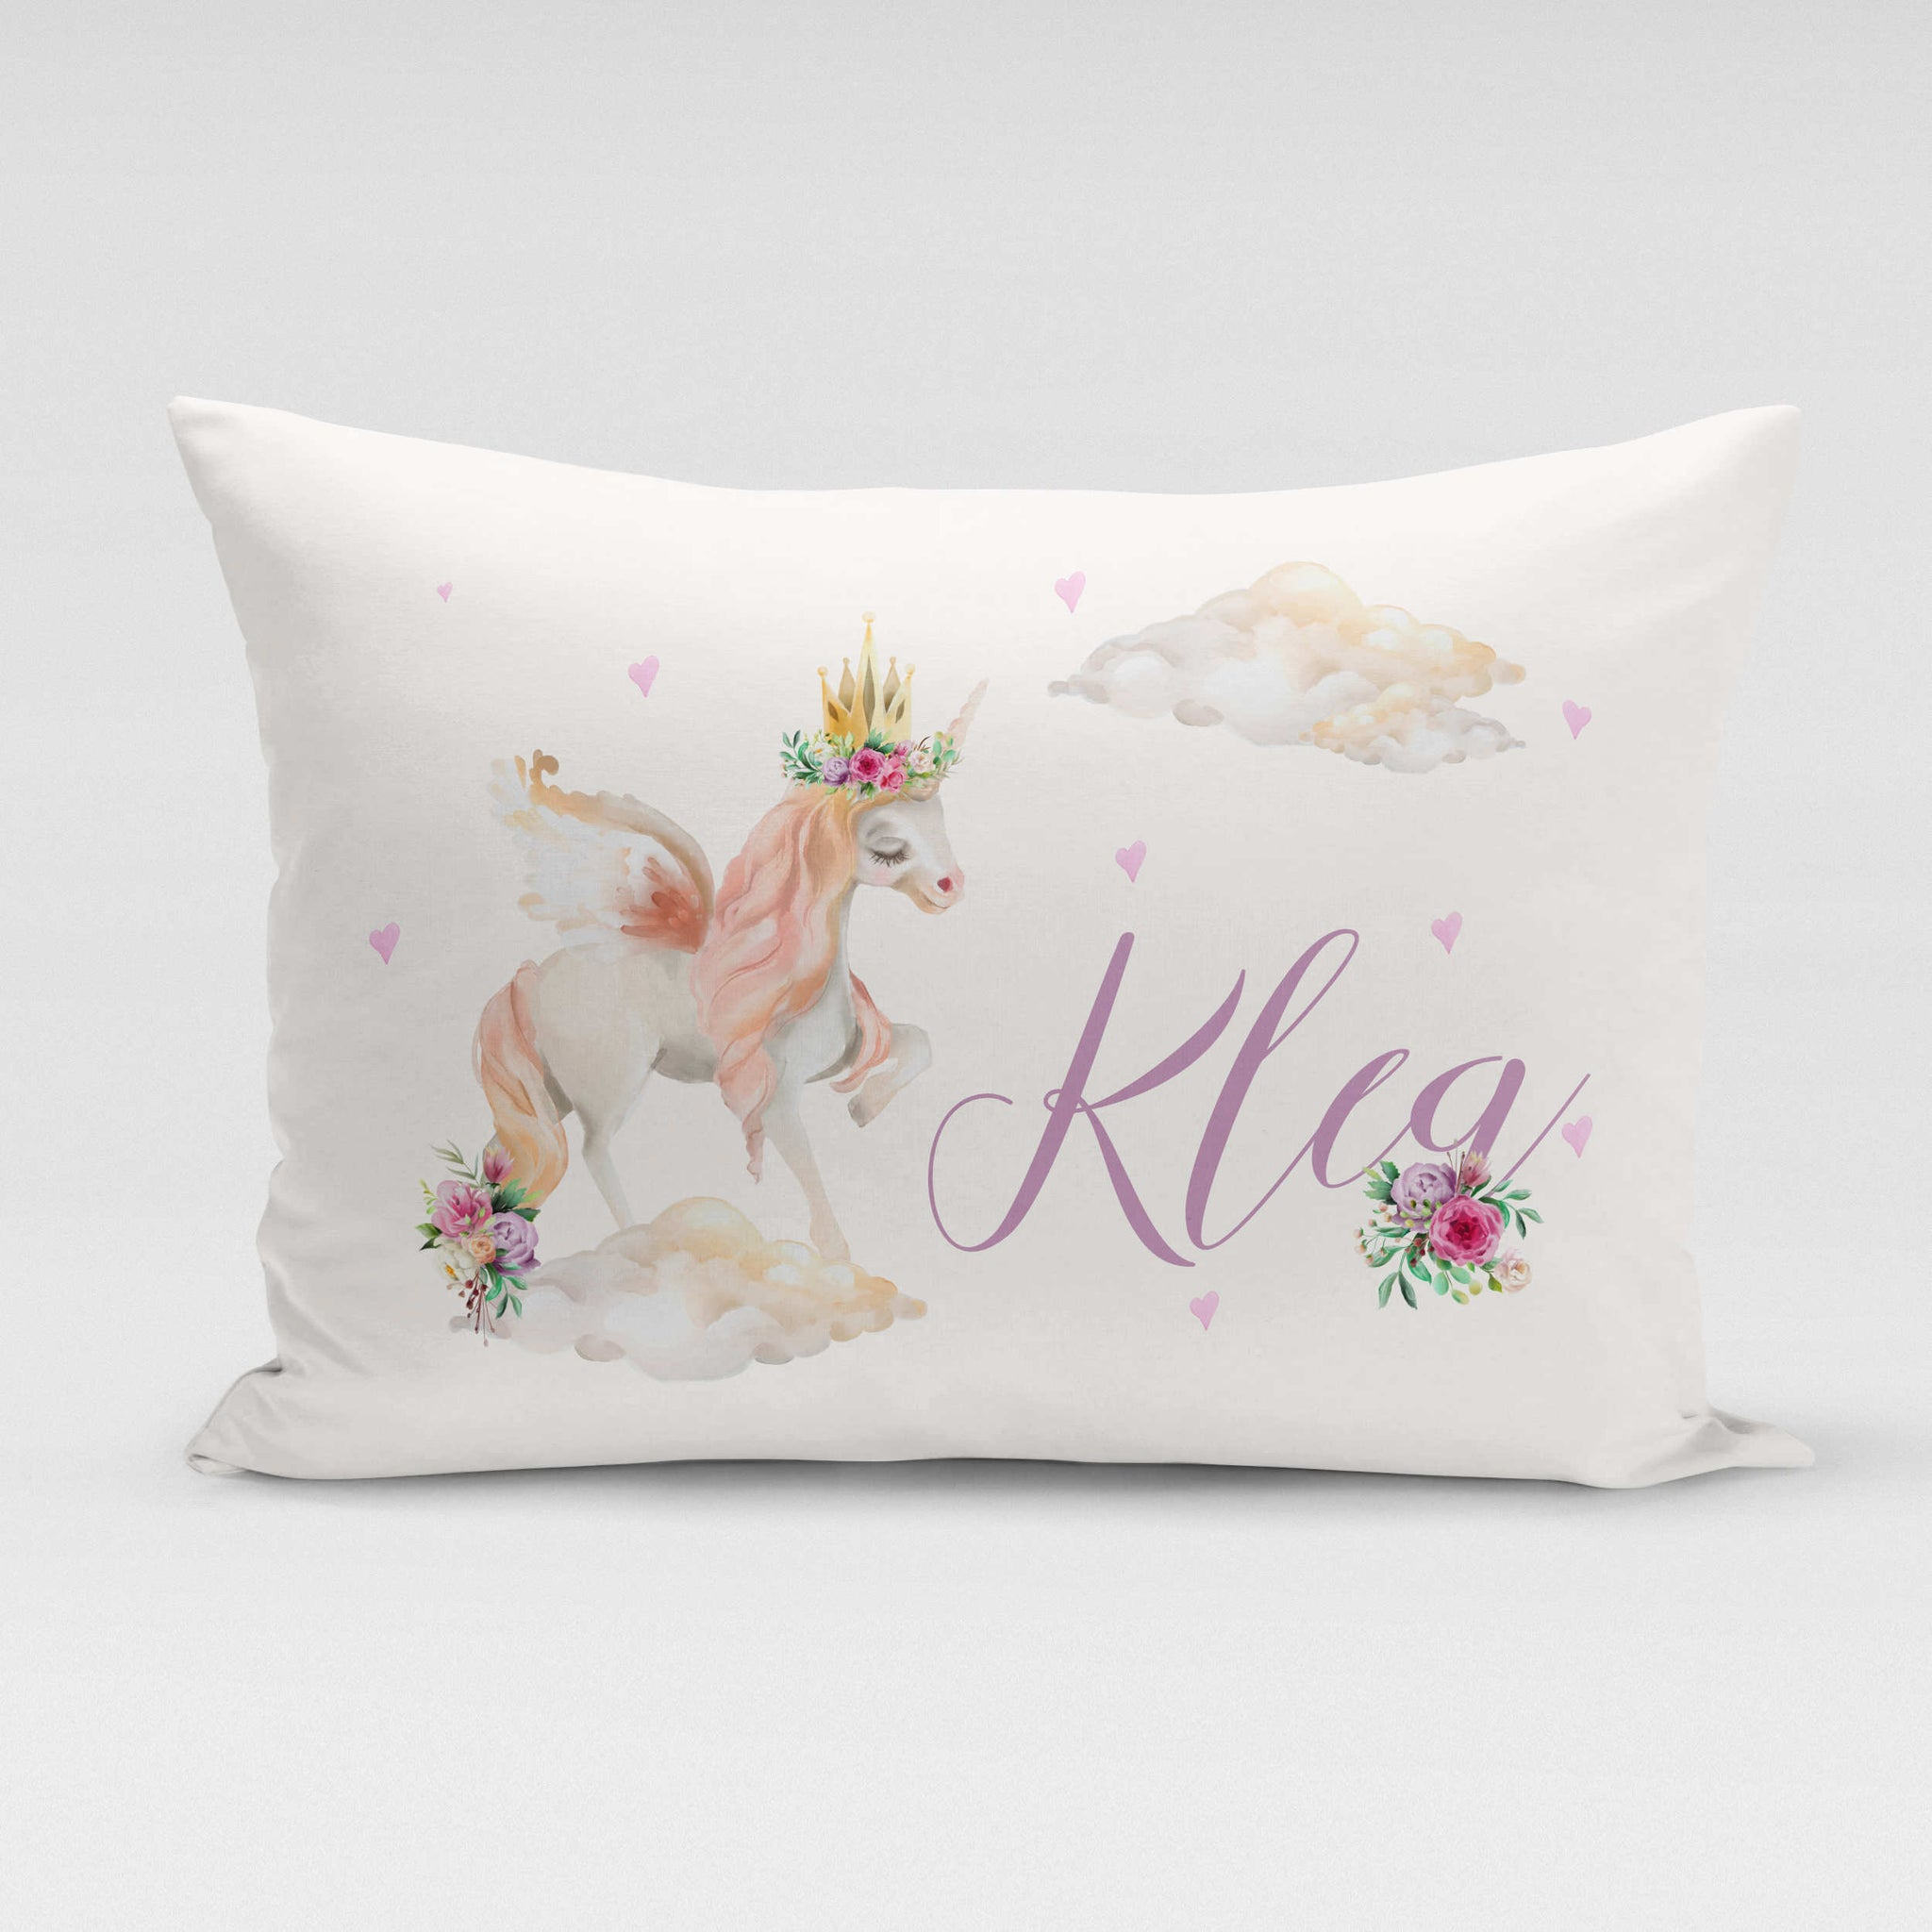 Personalised Pillowcase - Dreamy Unicorn